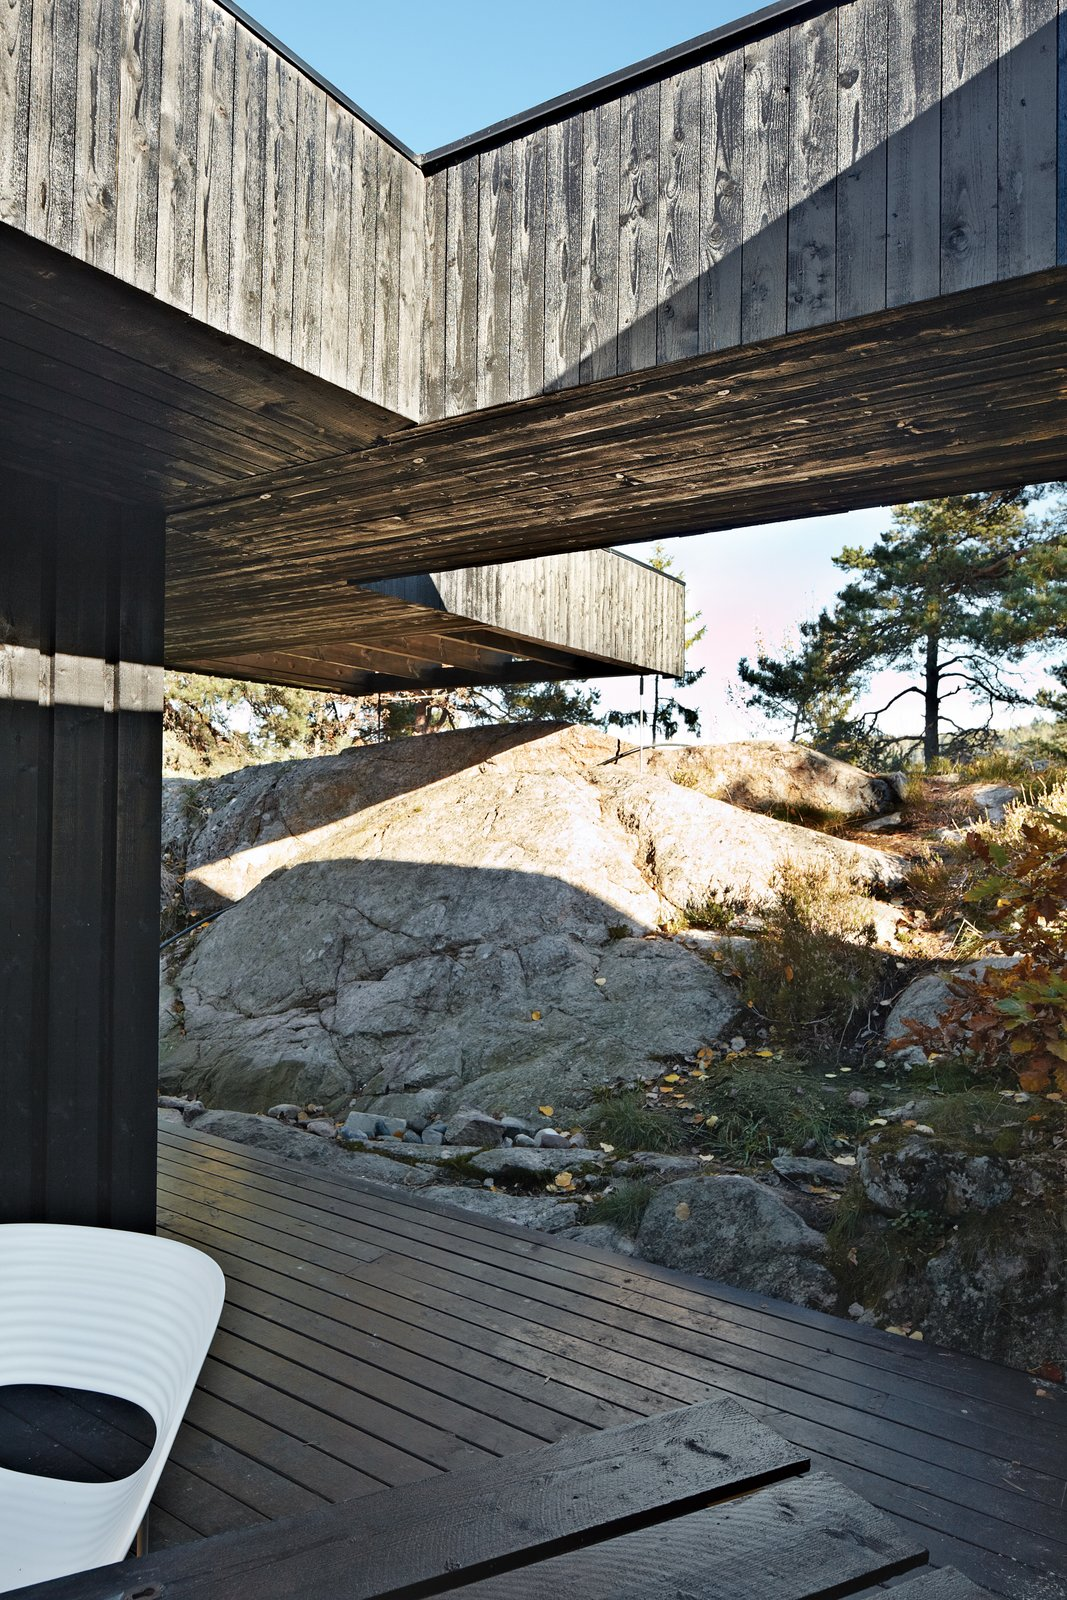 A section of the roof reaches over a rock outcropping—a detail that visually connects the house to the landscape and offers a handy way to climb up to the roof deck without using a ladder. Tagged: Outdoor, Boulders, Large Patio, Porch, Deck, Wood Patio, Porch, Deck, and Trees.  Cabins & Hideouts by Stephen Blake from 430 Cabin